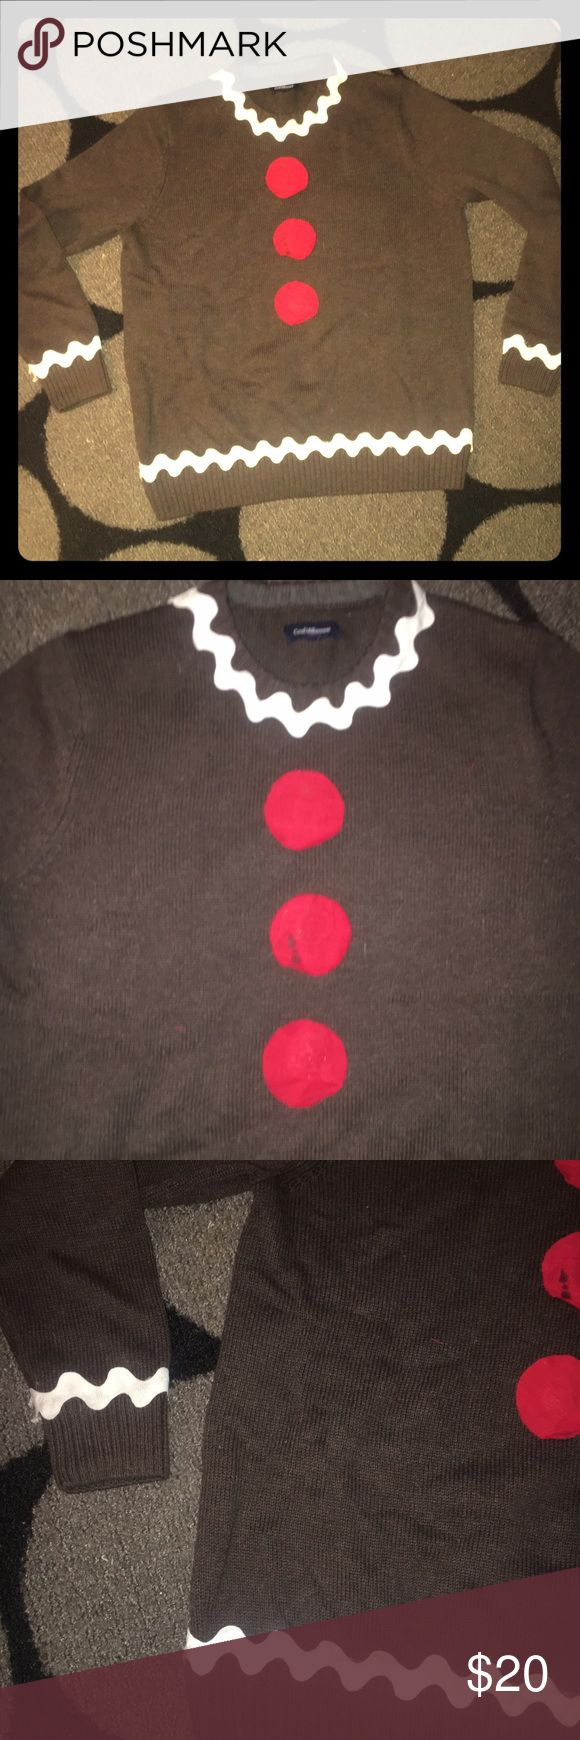 Homemade ugly gingerbread sweater The perfect sweater for your holiday party. Homemade. Small stain on second red dot. Sweater plus crafts cost over $40. Men's sweater size large but does not run big at all. Worn once for a few hours. Sweaters Crew & Scoop Necks